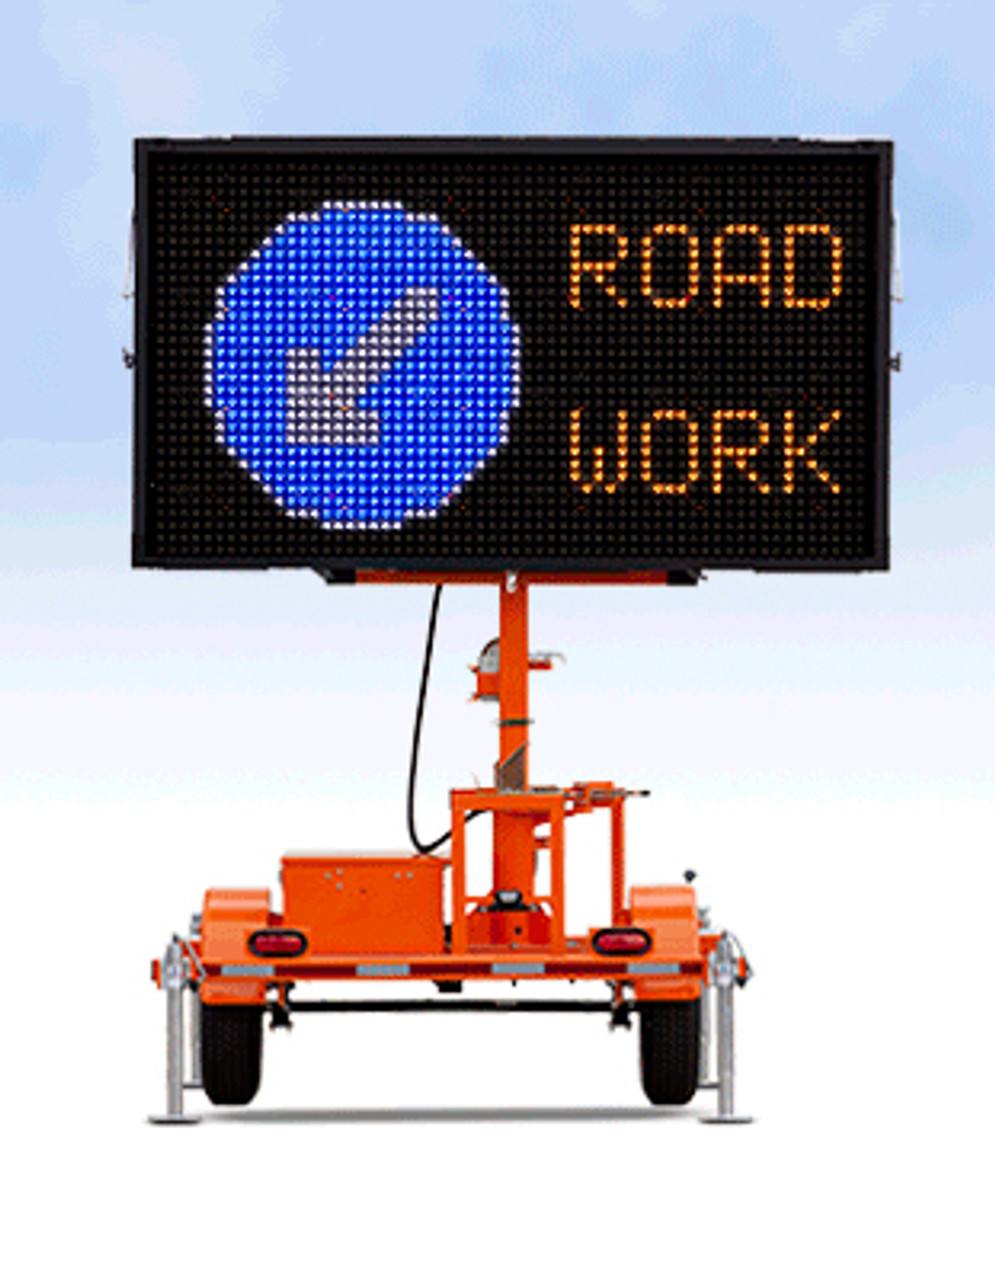 Wanco Color Message Board Sign and Trailer WVTM-5C, Full Graphic Display, Solar and Battery Powered